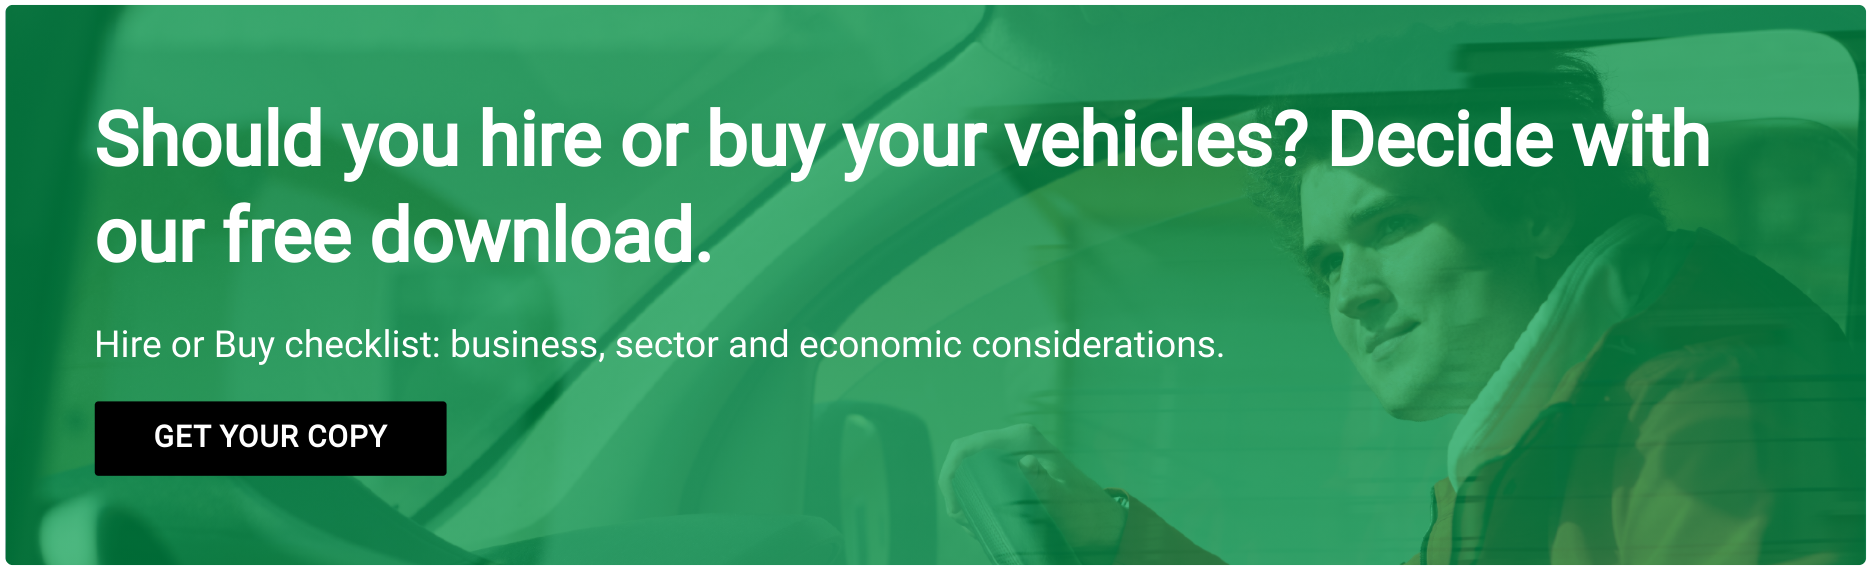 LCV Acquisition – Hire or Buy? Choosing the right fleet option for your company